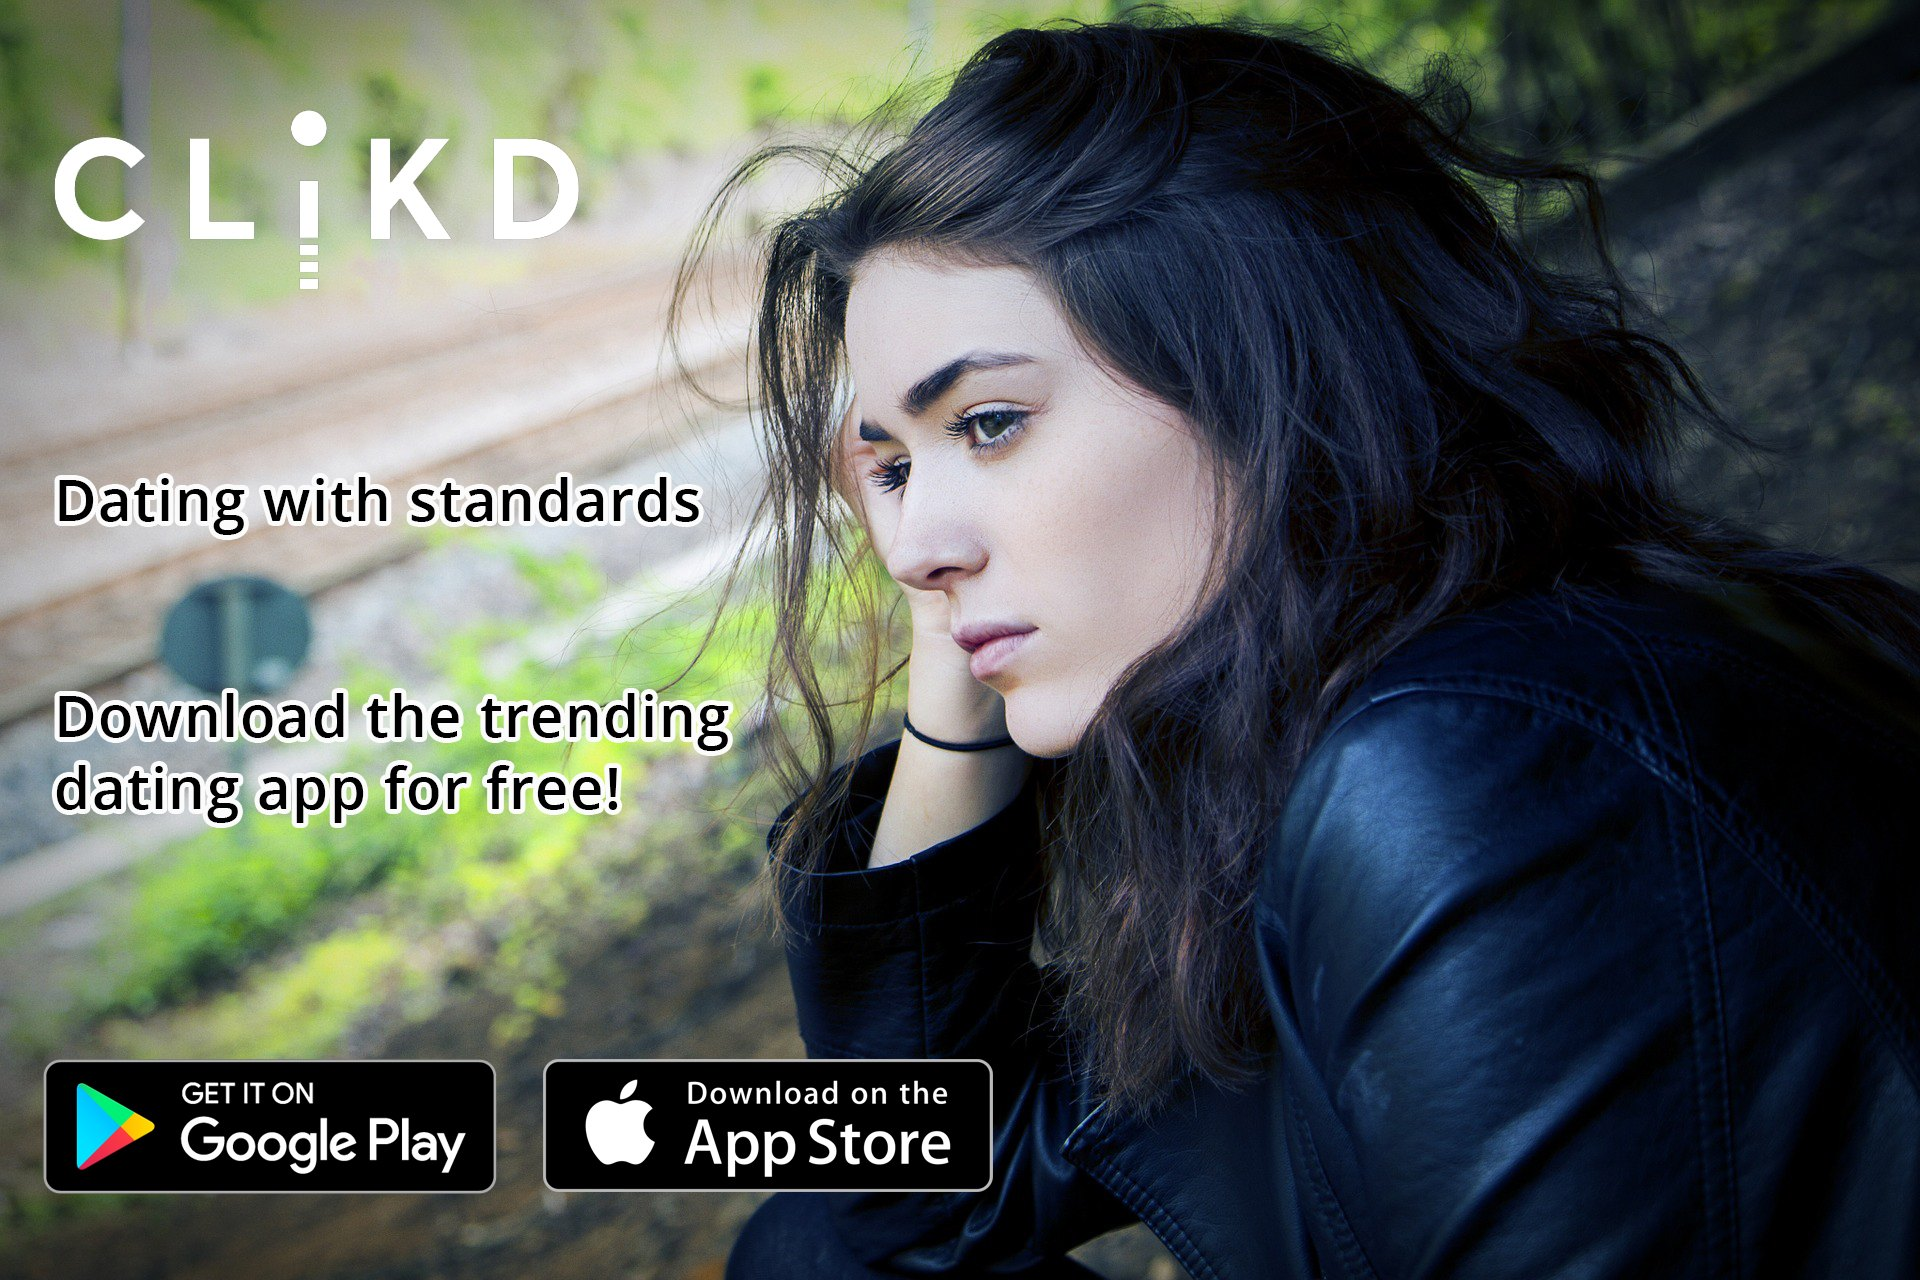 CLiKD Dating App